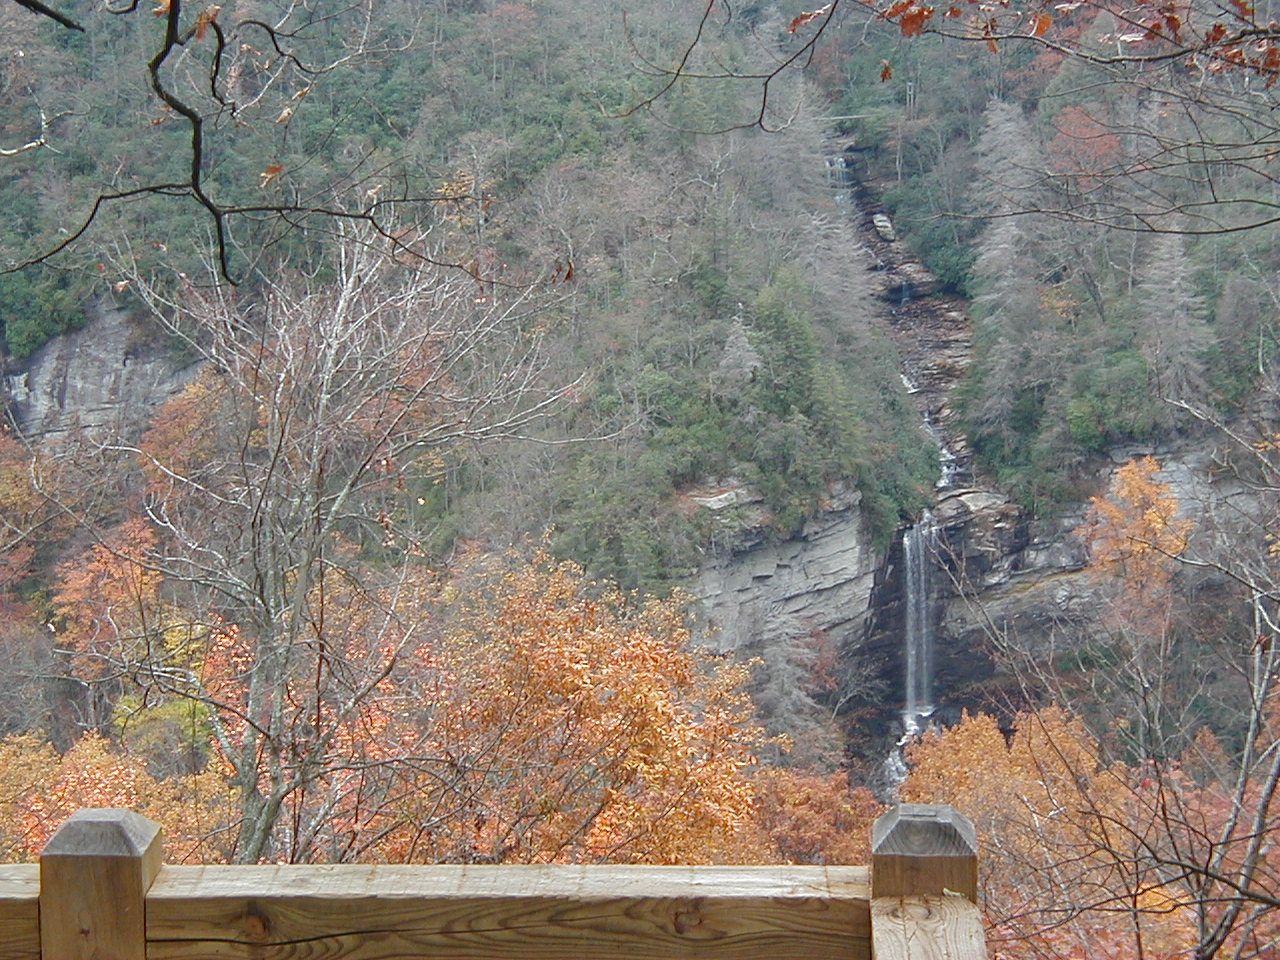 3030343430 72f95abc0a o Photo Essay: 11 Wonderous Waterfalls of the Western Carolinas